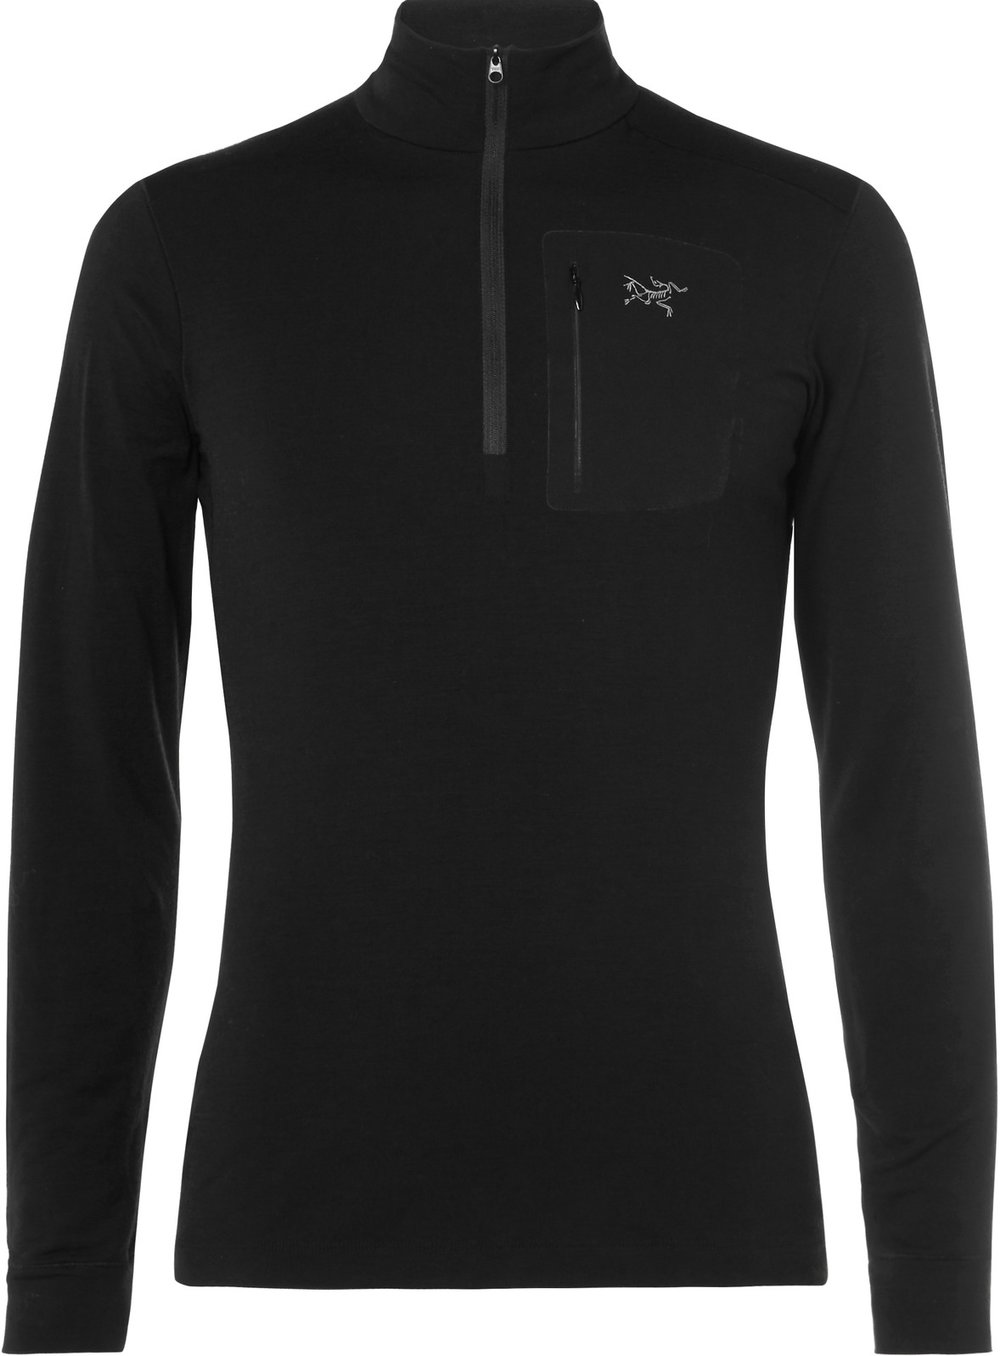 Arc'teryx Satoro AR Wool-Blend Half-Zip Base Layer, $140